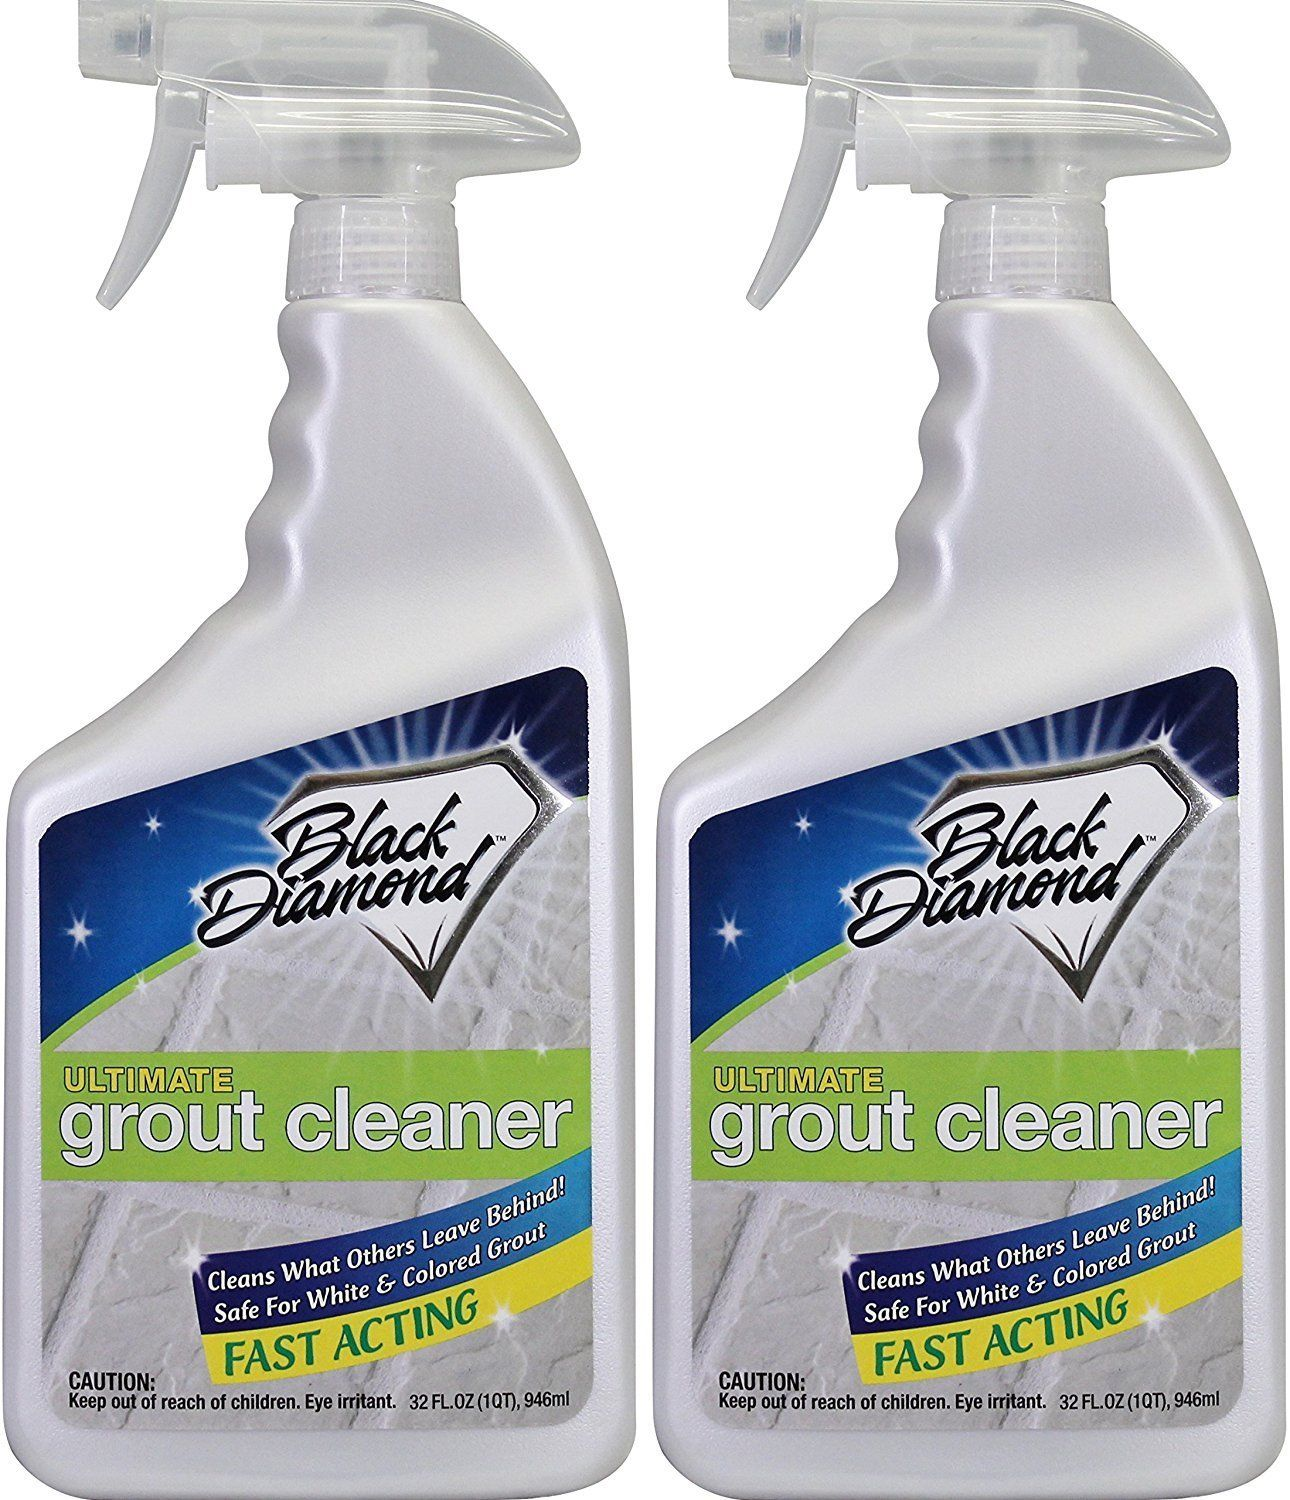 Best Tile Cleaner Best Grout Cleaner Tile Cleaners Grout Cleaner